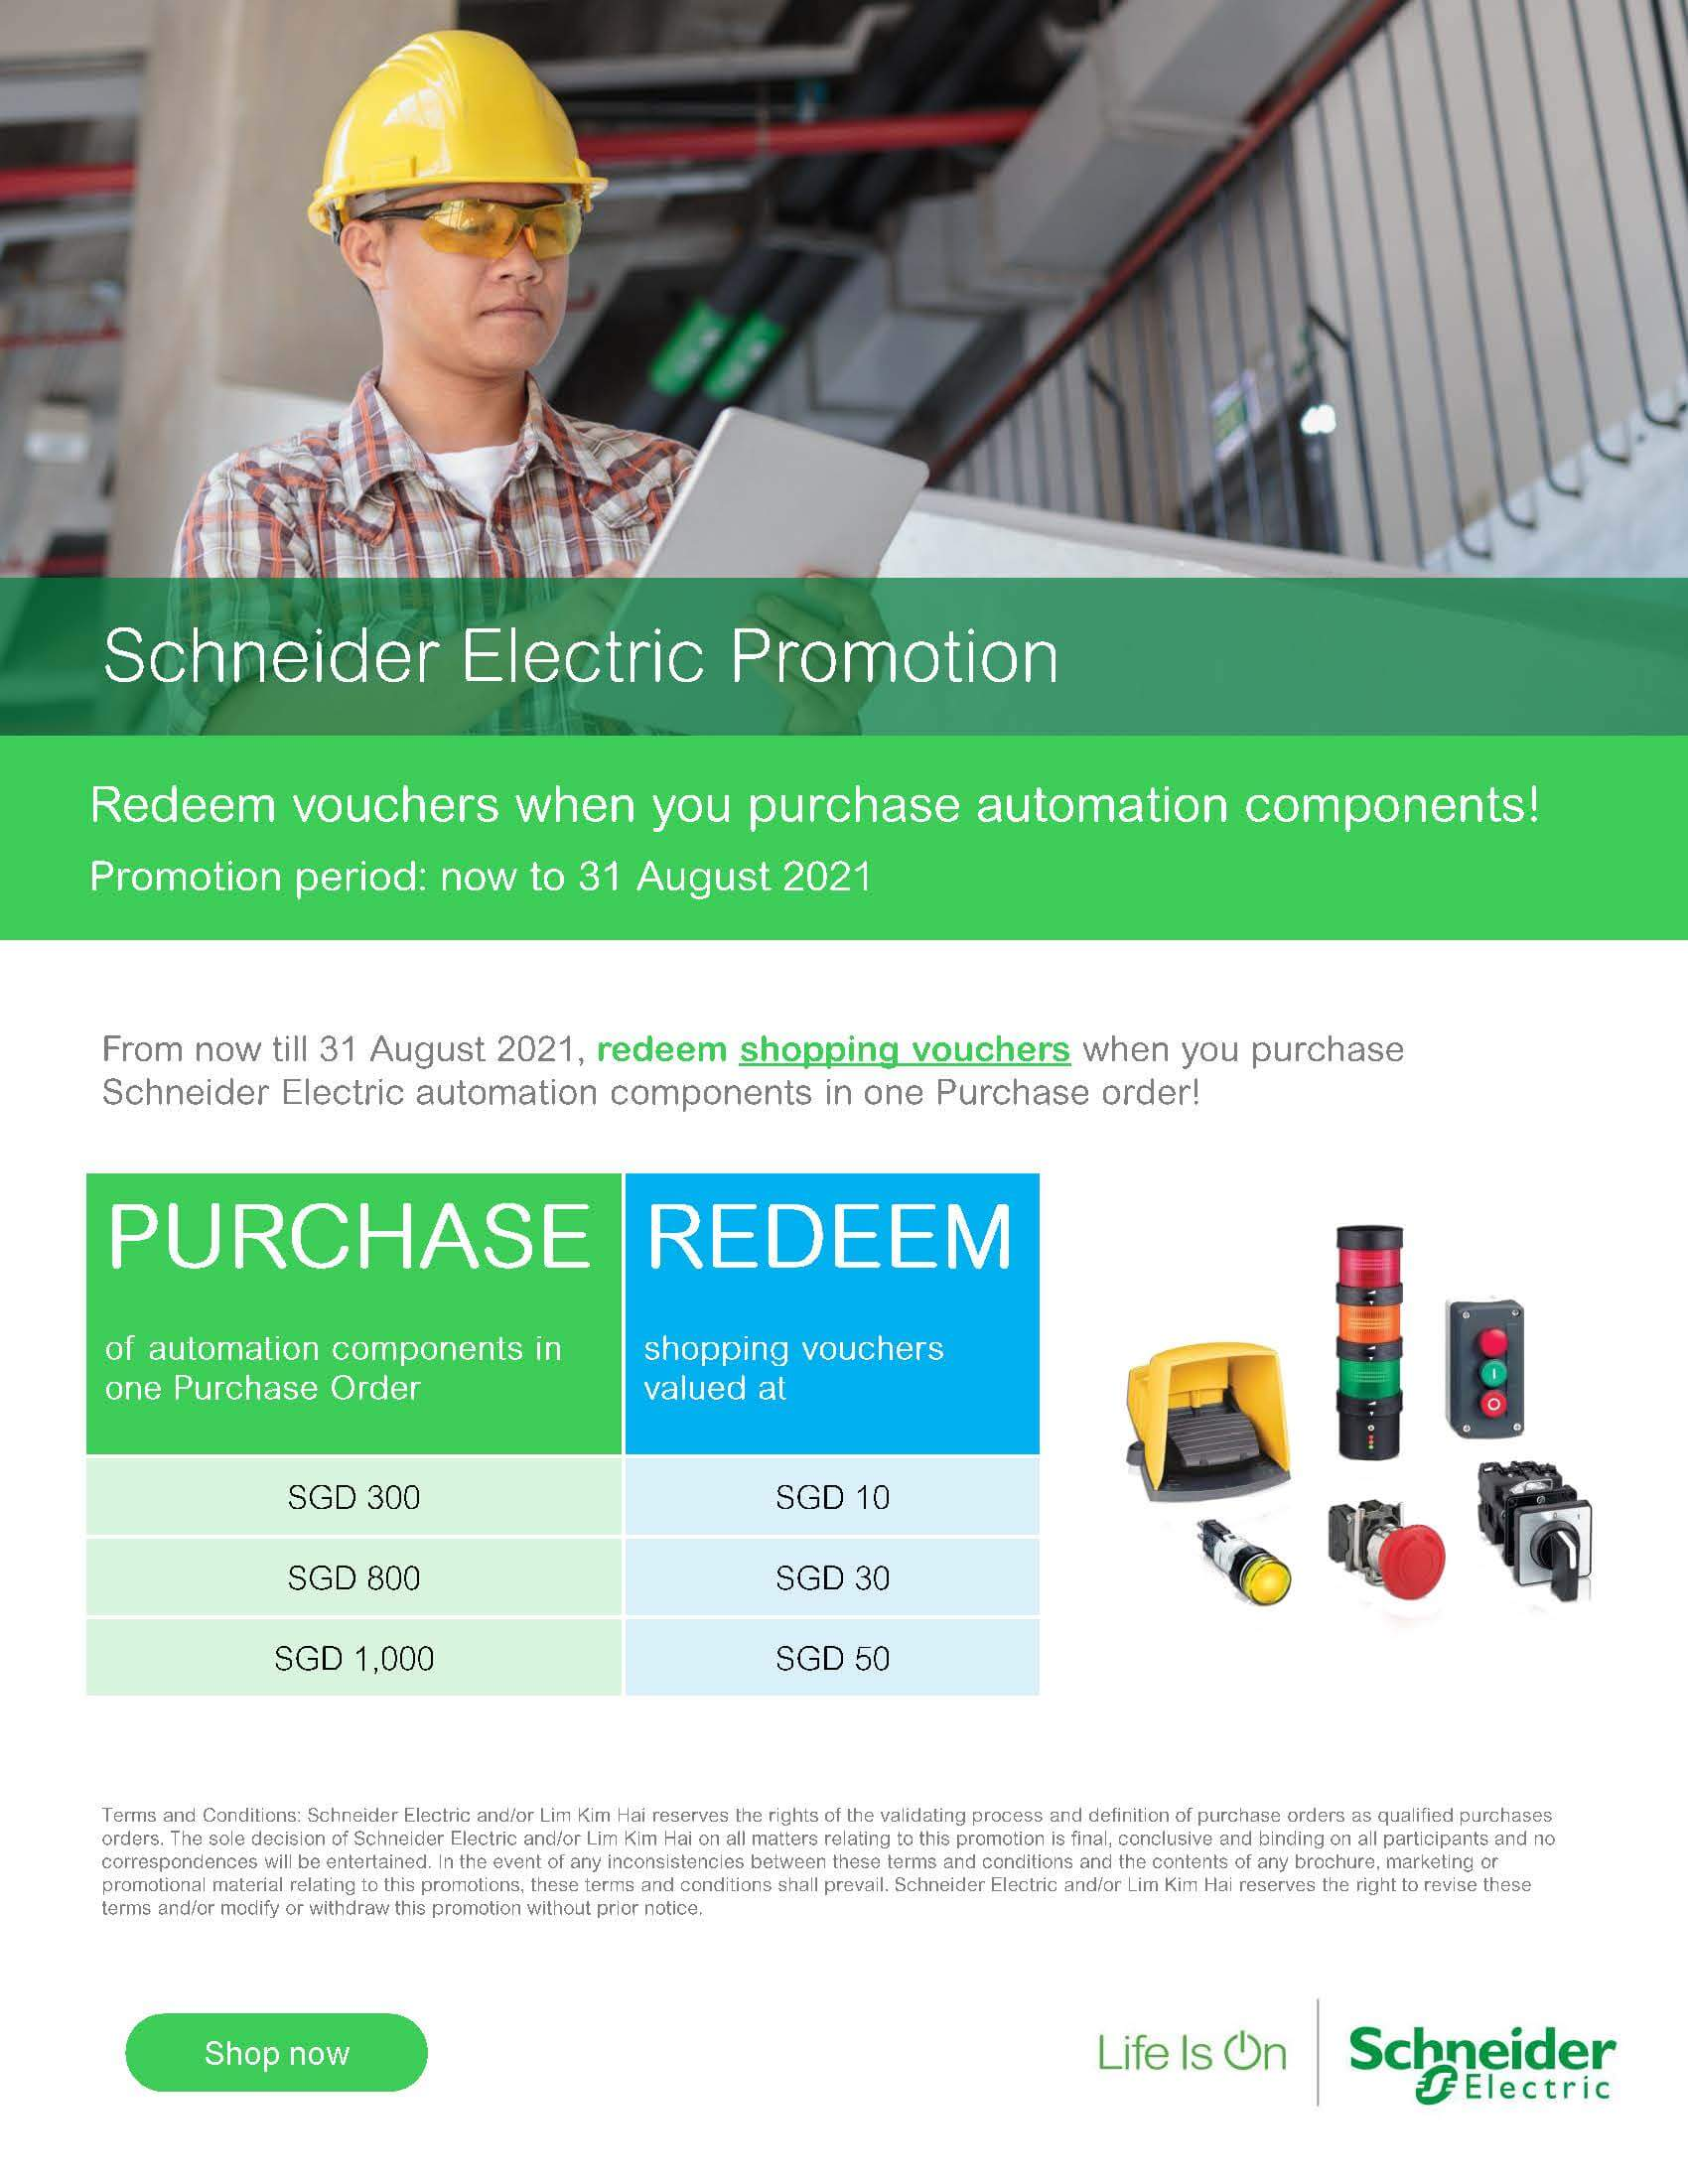 Schneider Electric Industrial Automation Promotion